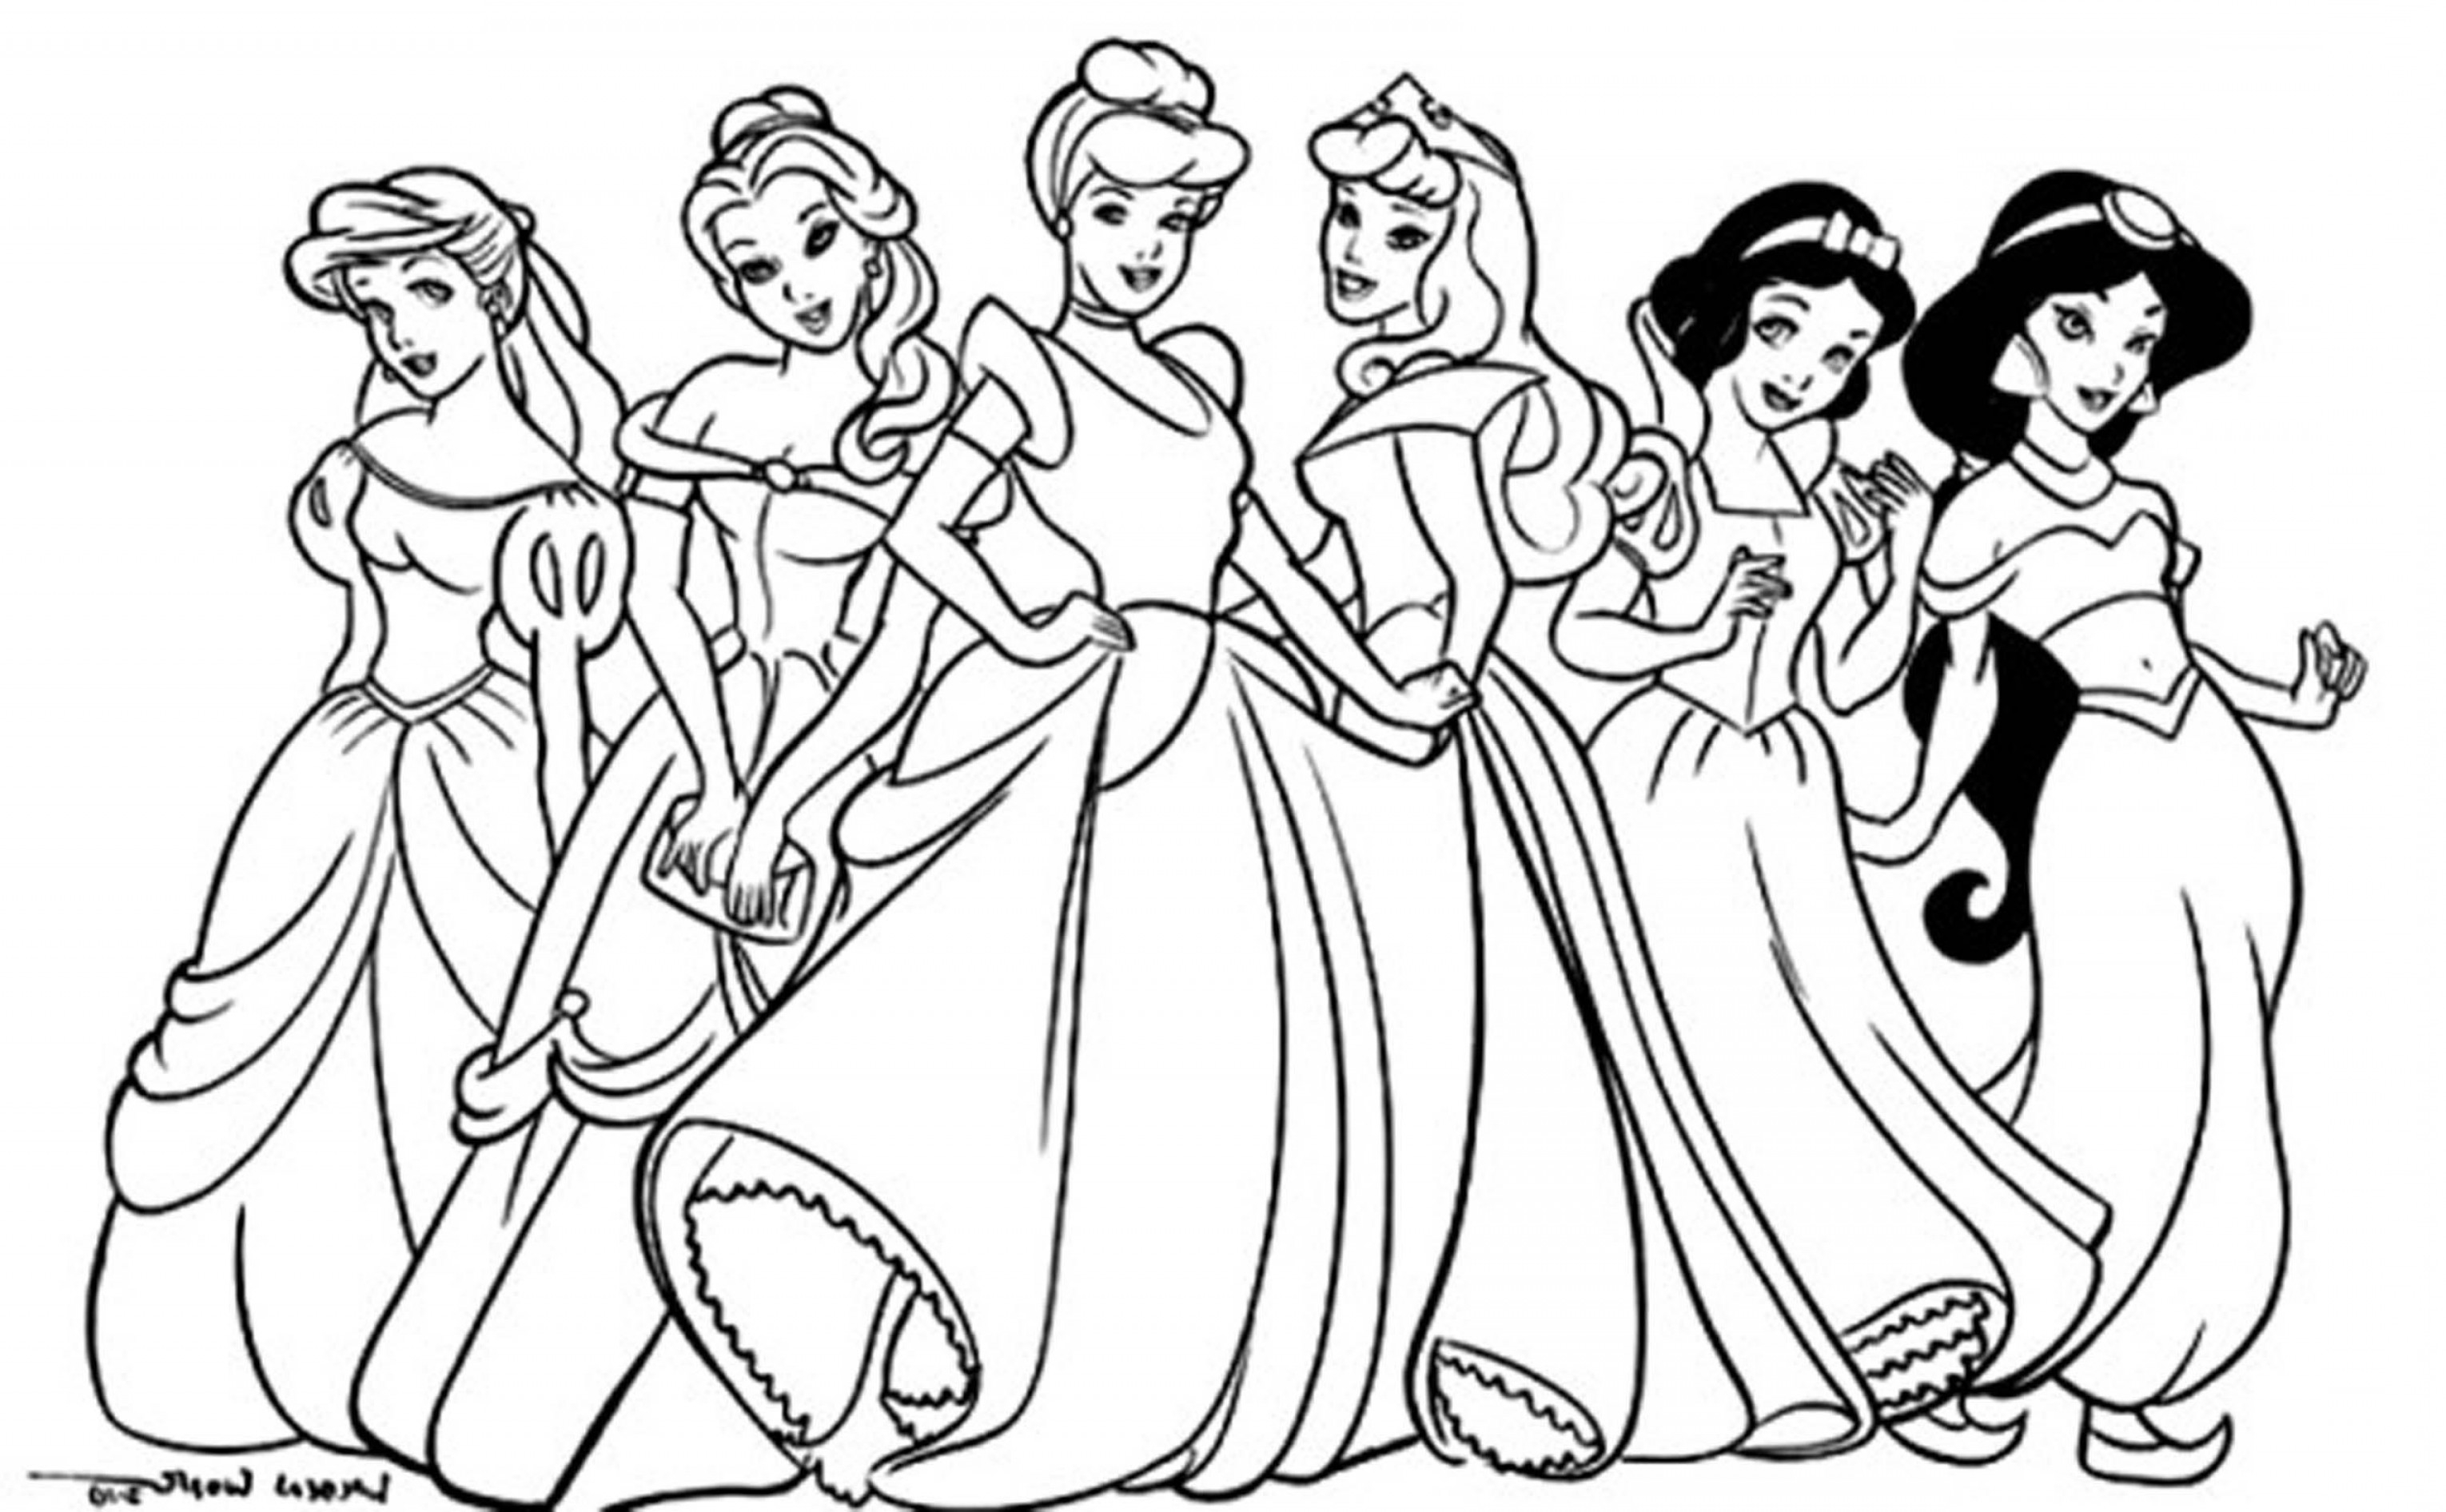 Coloring Disney Pages Coloring Pages Free Princess Activity Pages Printable Coloring To